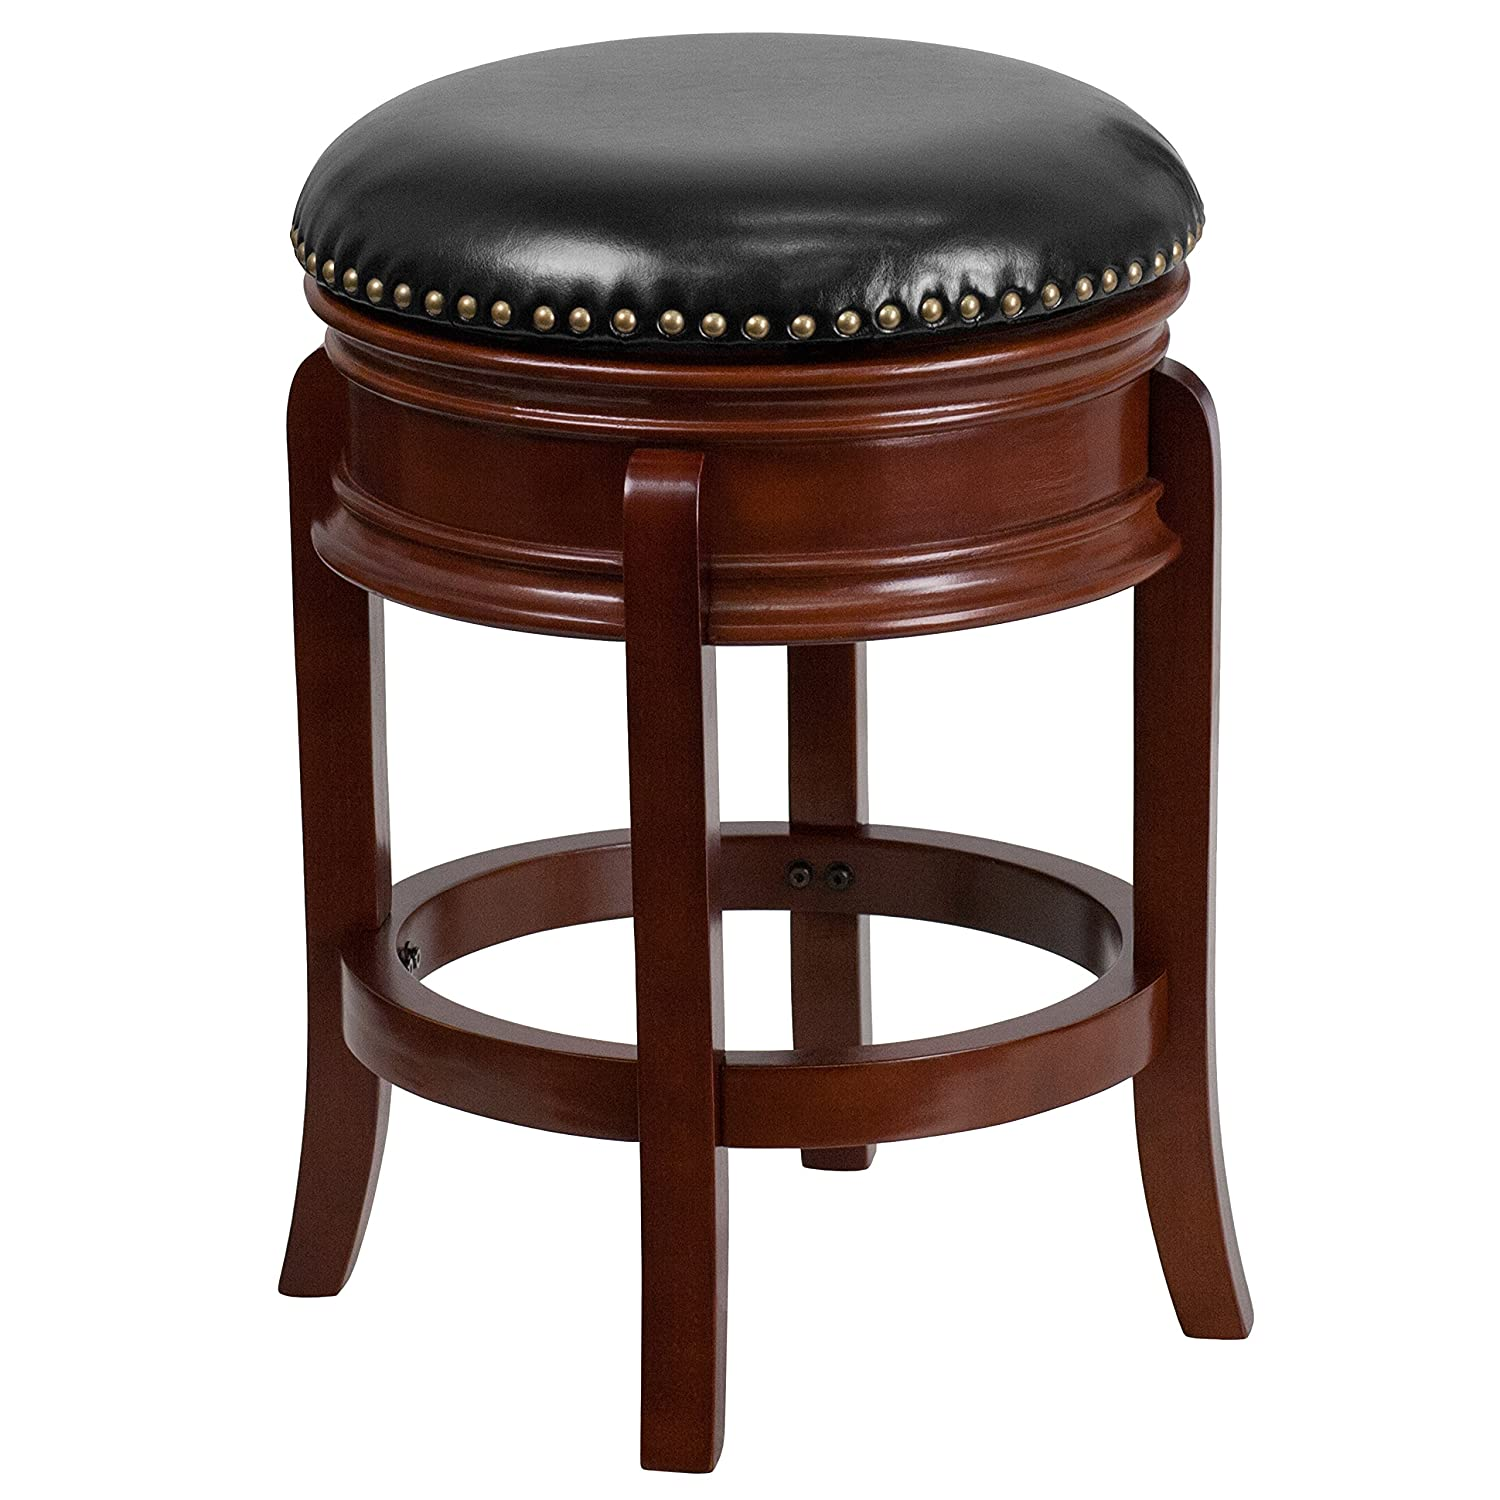 Flash Furniture 24 High Backless Cherry Wood Counter Height Stool with Black Leather Swivel Seat